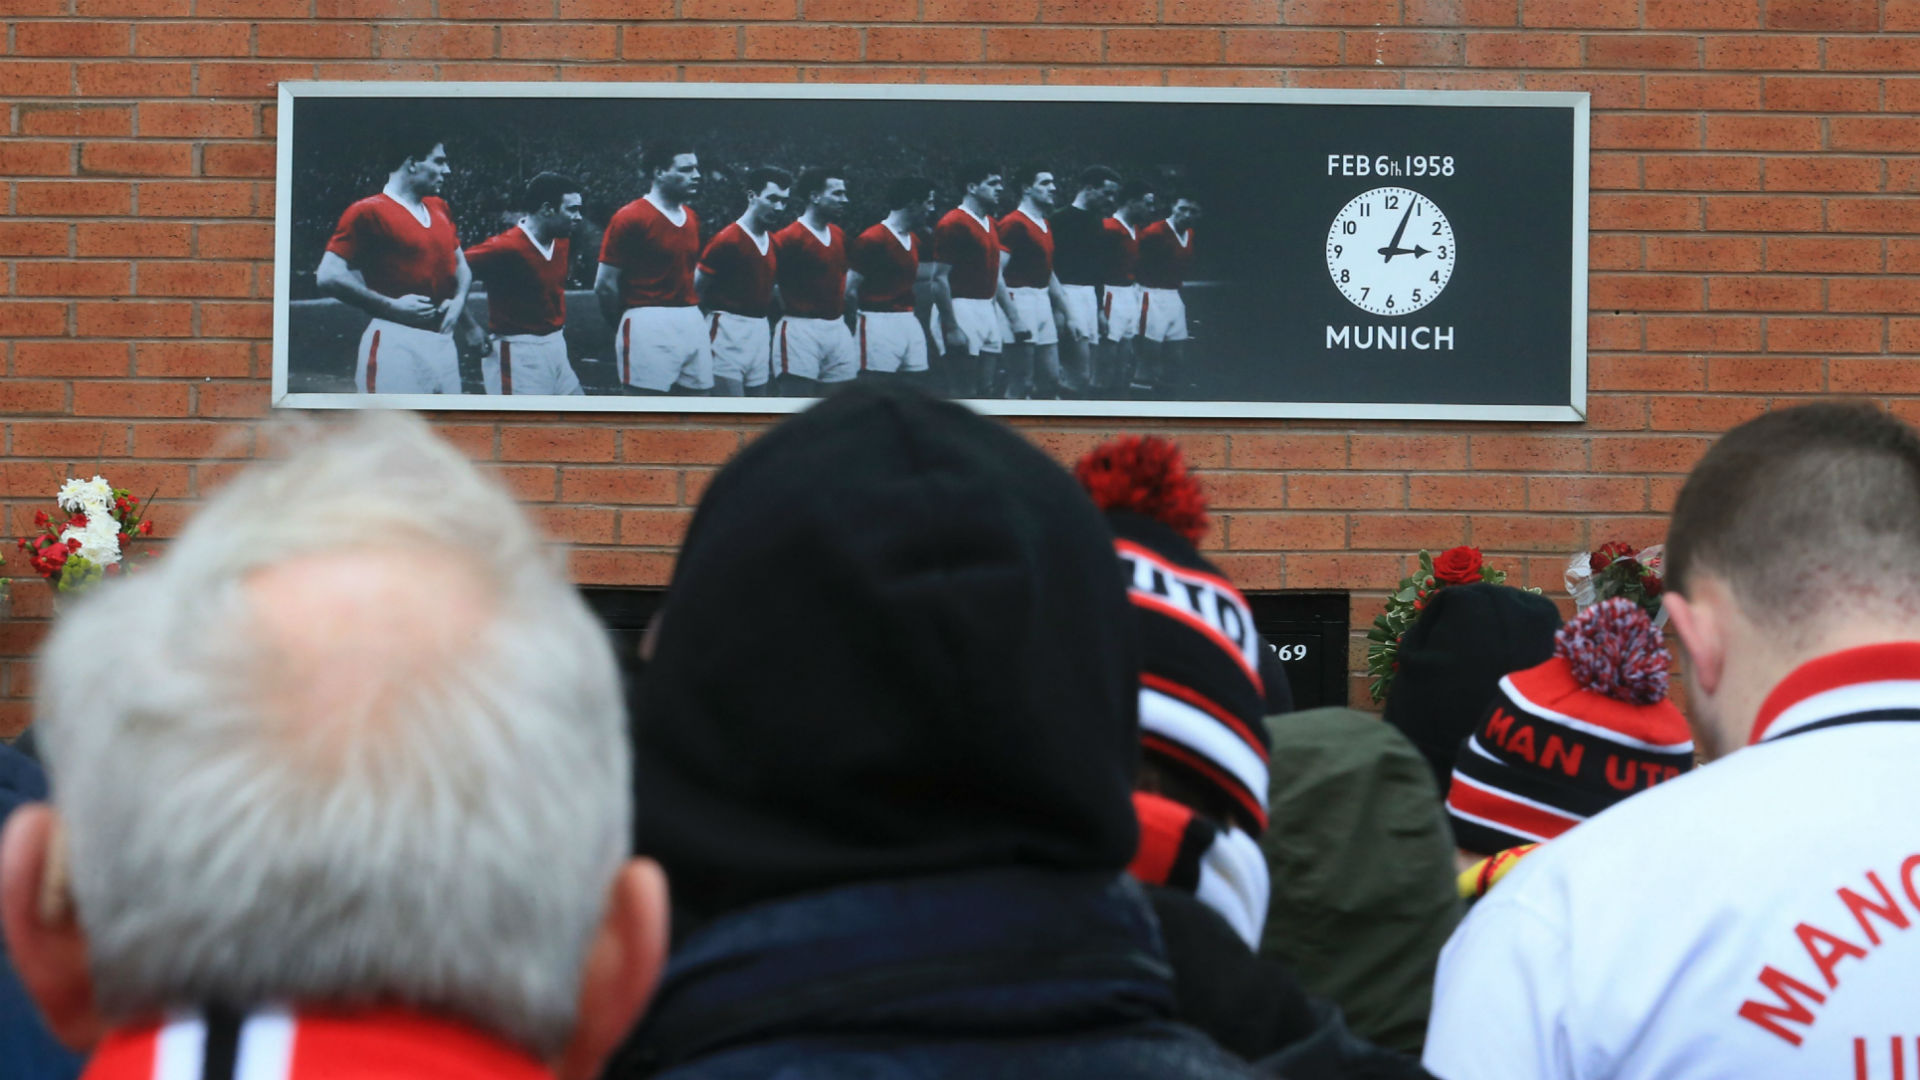 Munich air disaster memorial